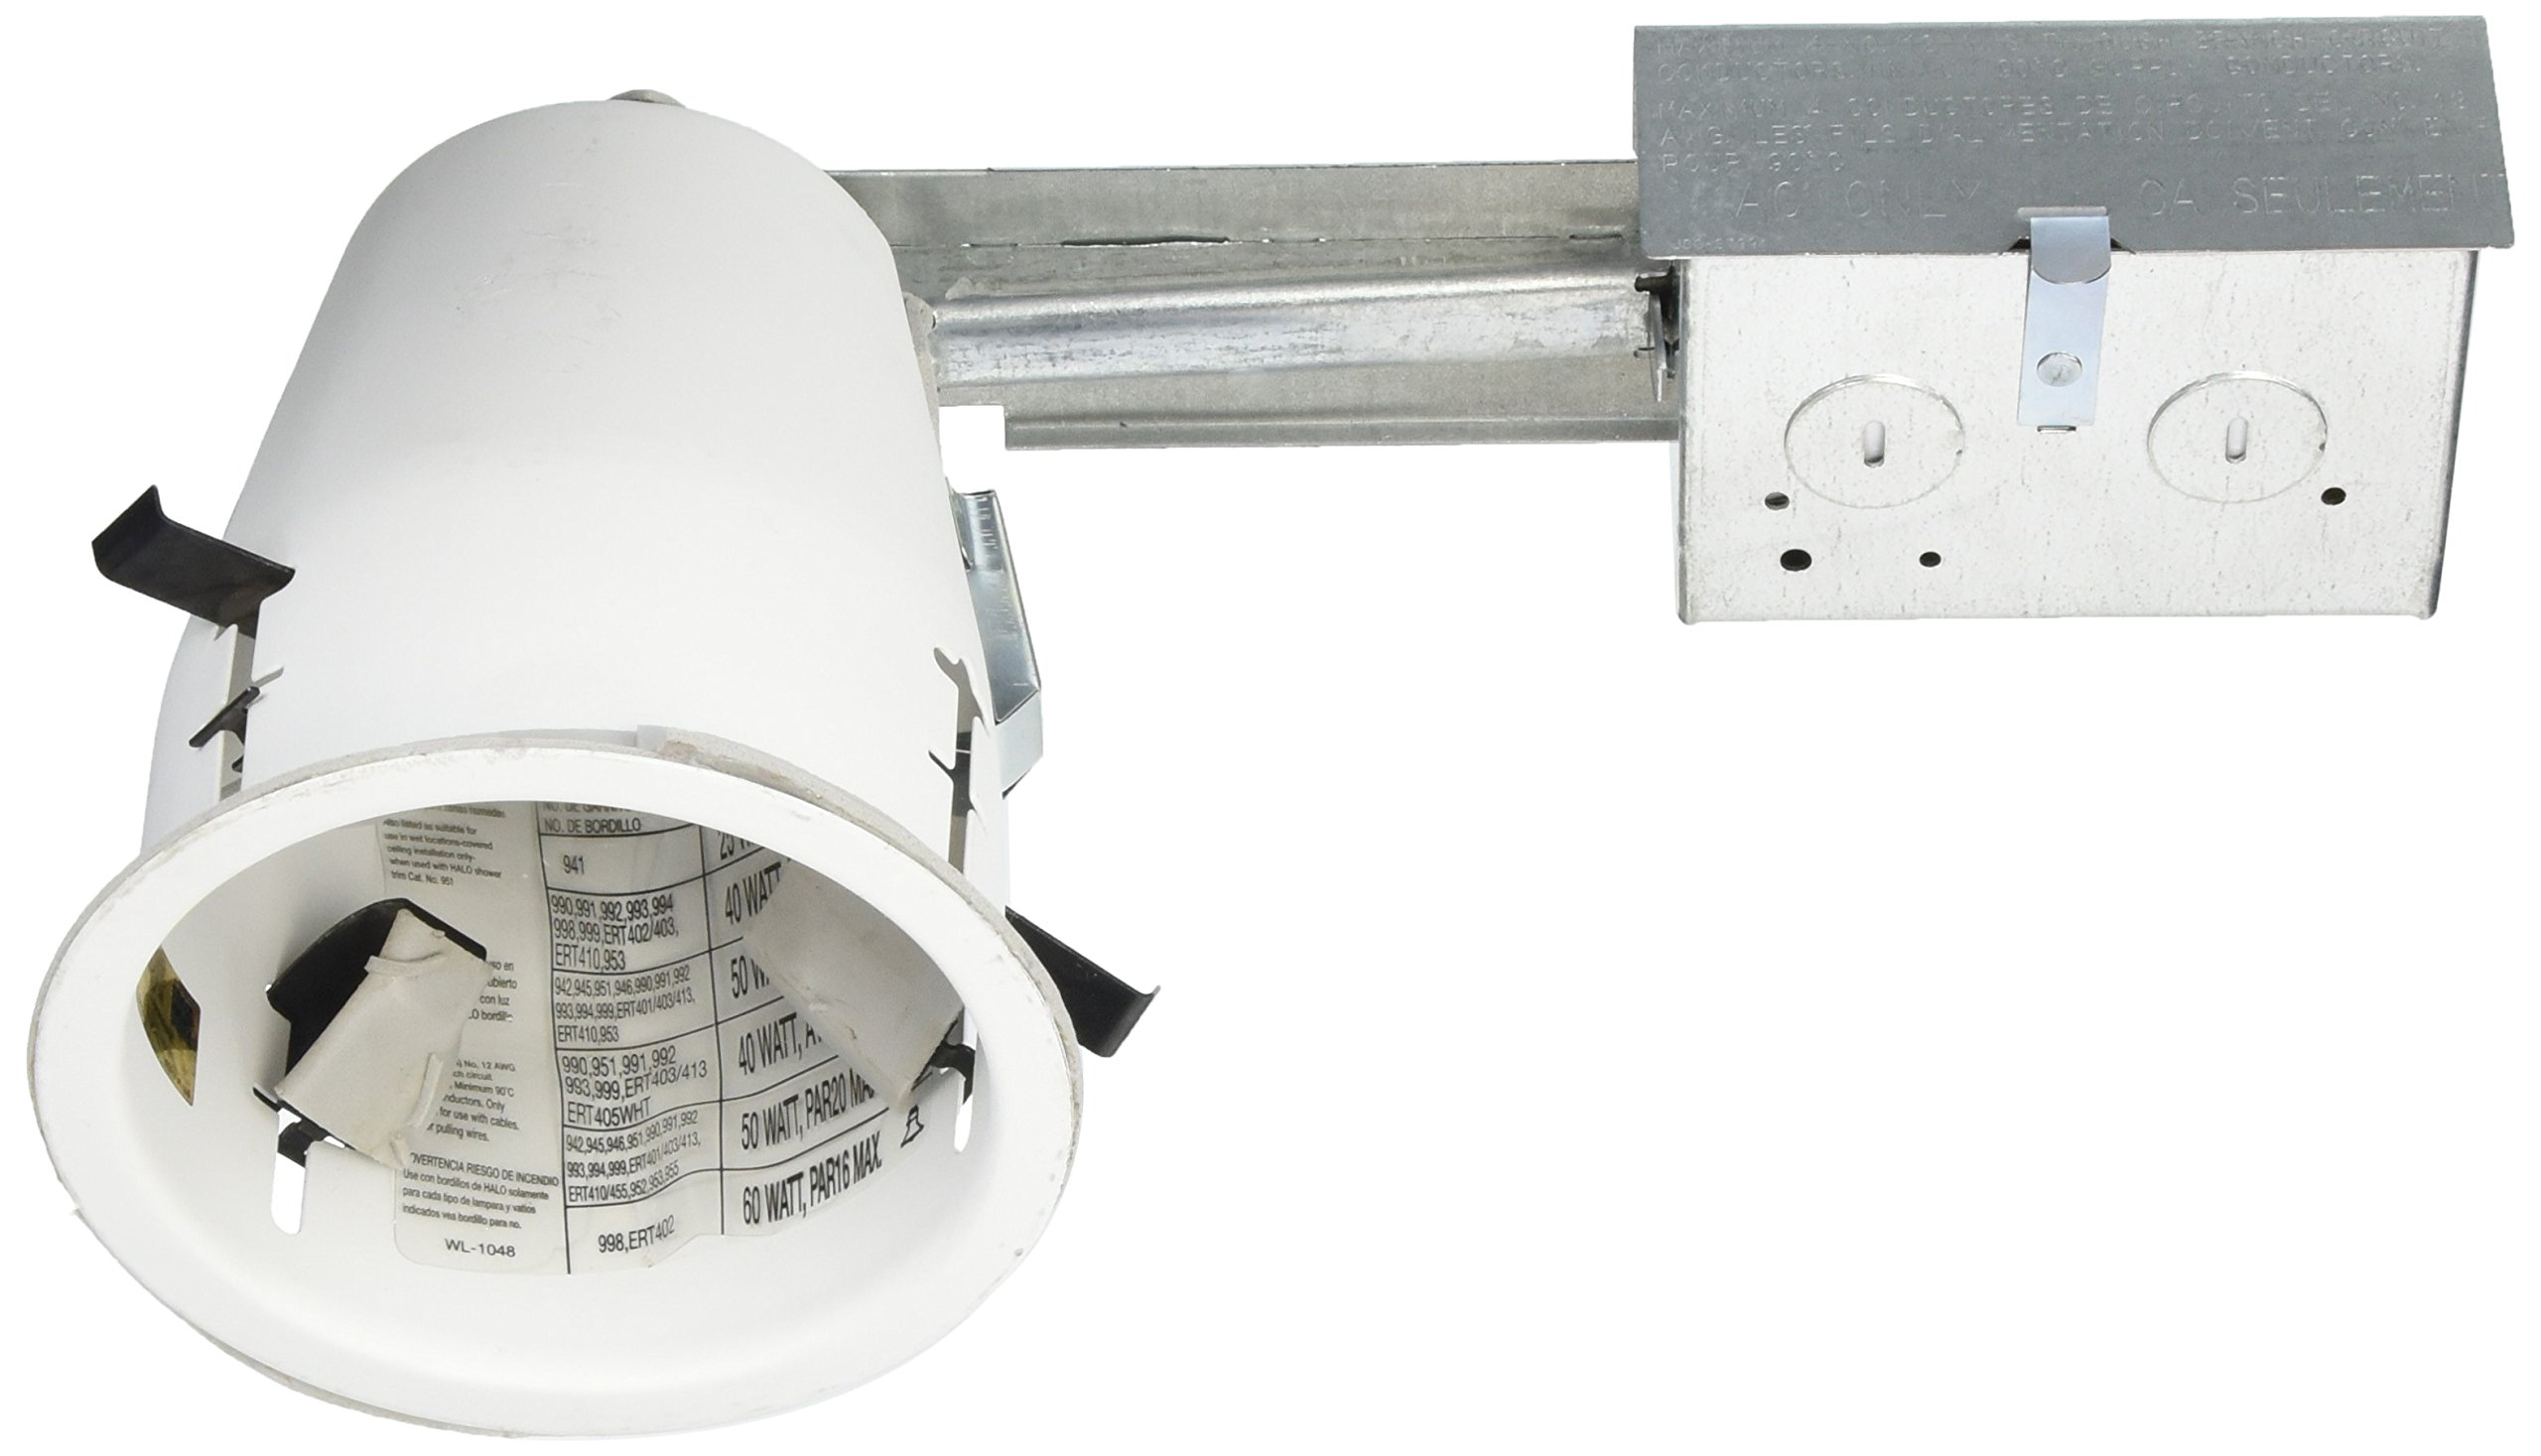 Halo H99RTAT, 4'' Housing Non-IC, Air-Tite Shallow Ceiling Remodel 120V Line Voltage